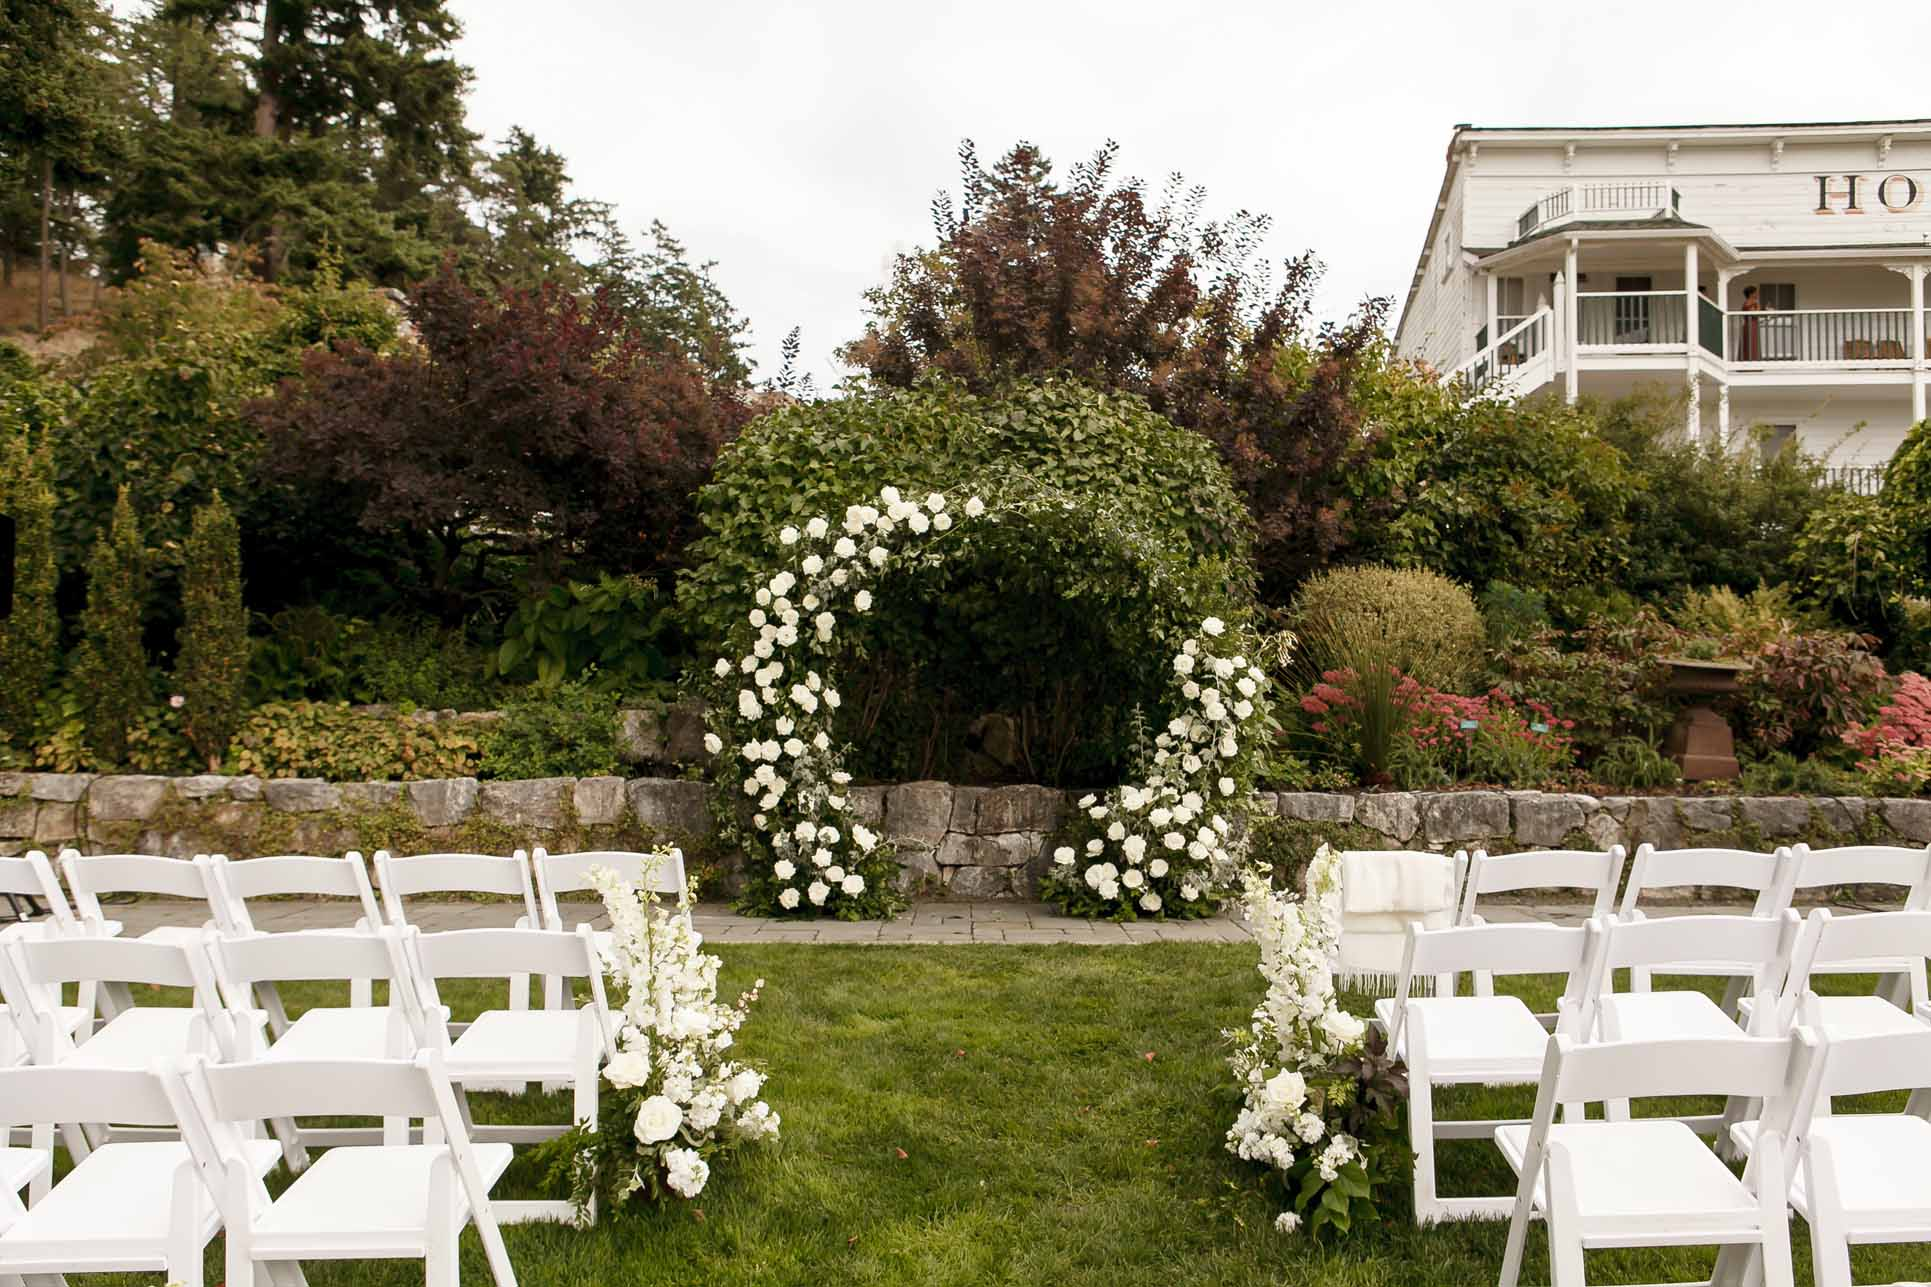 Outdoor wedding ceremony at Roche Harbor, with white flower arch